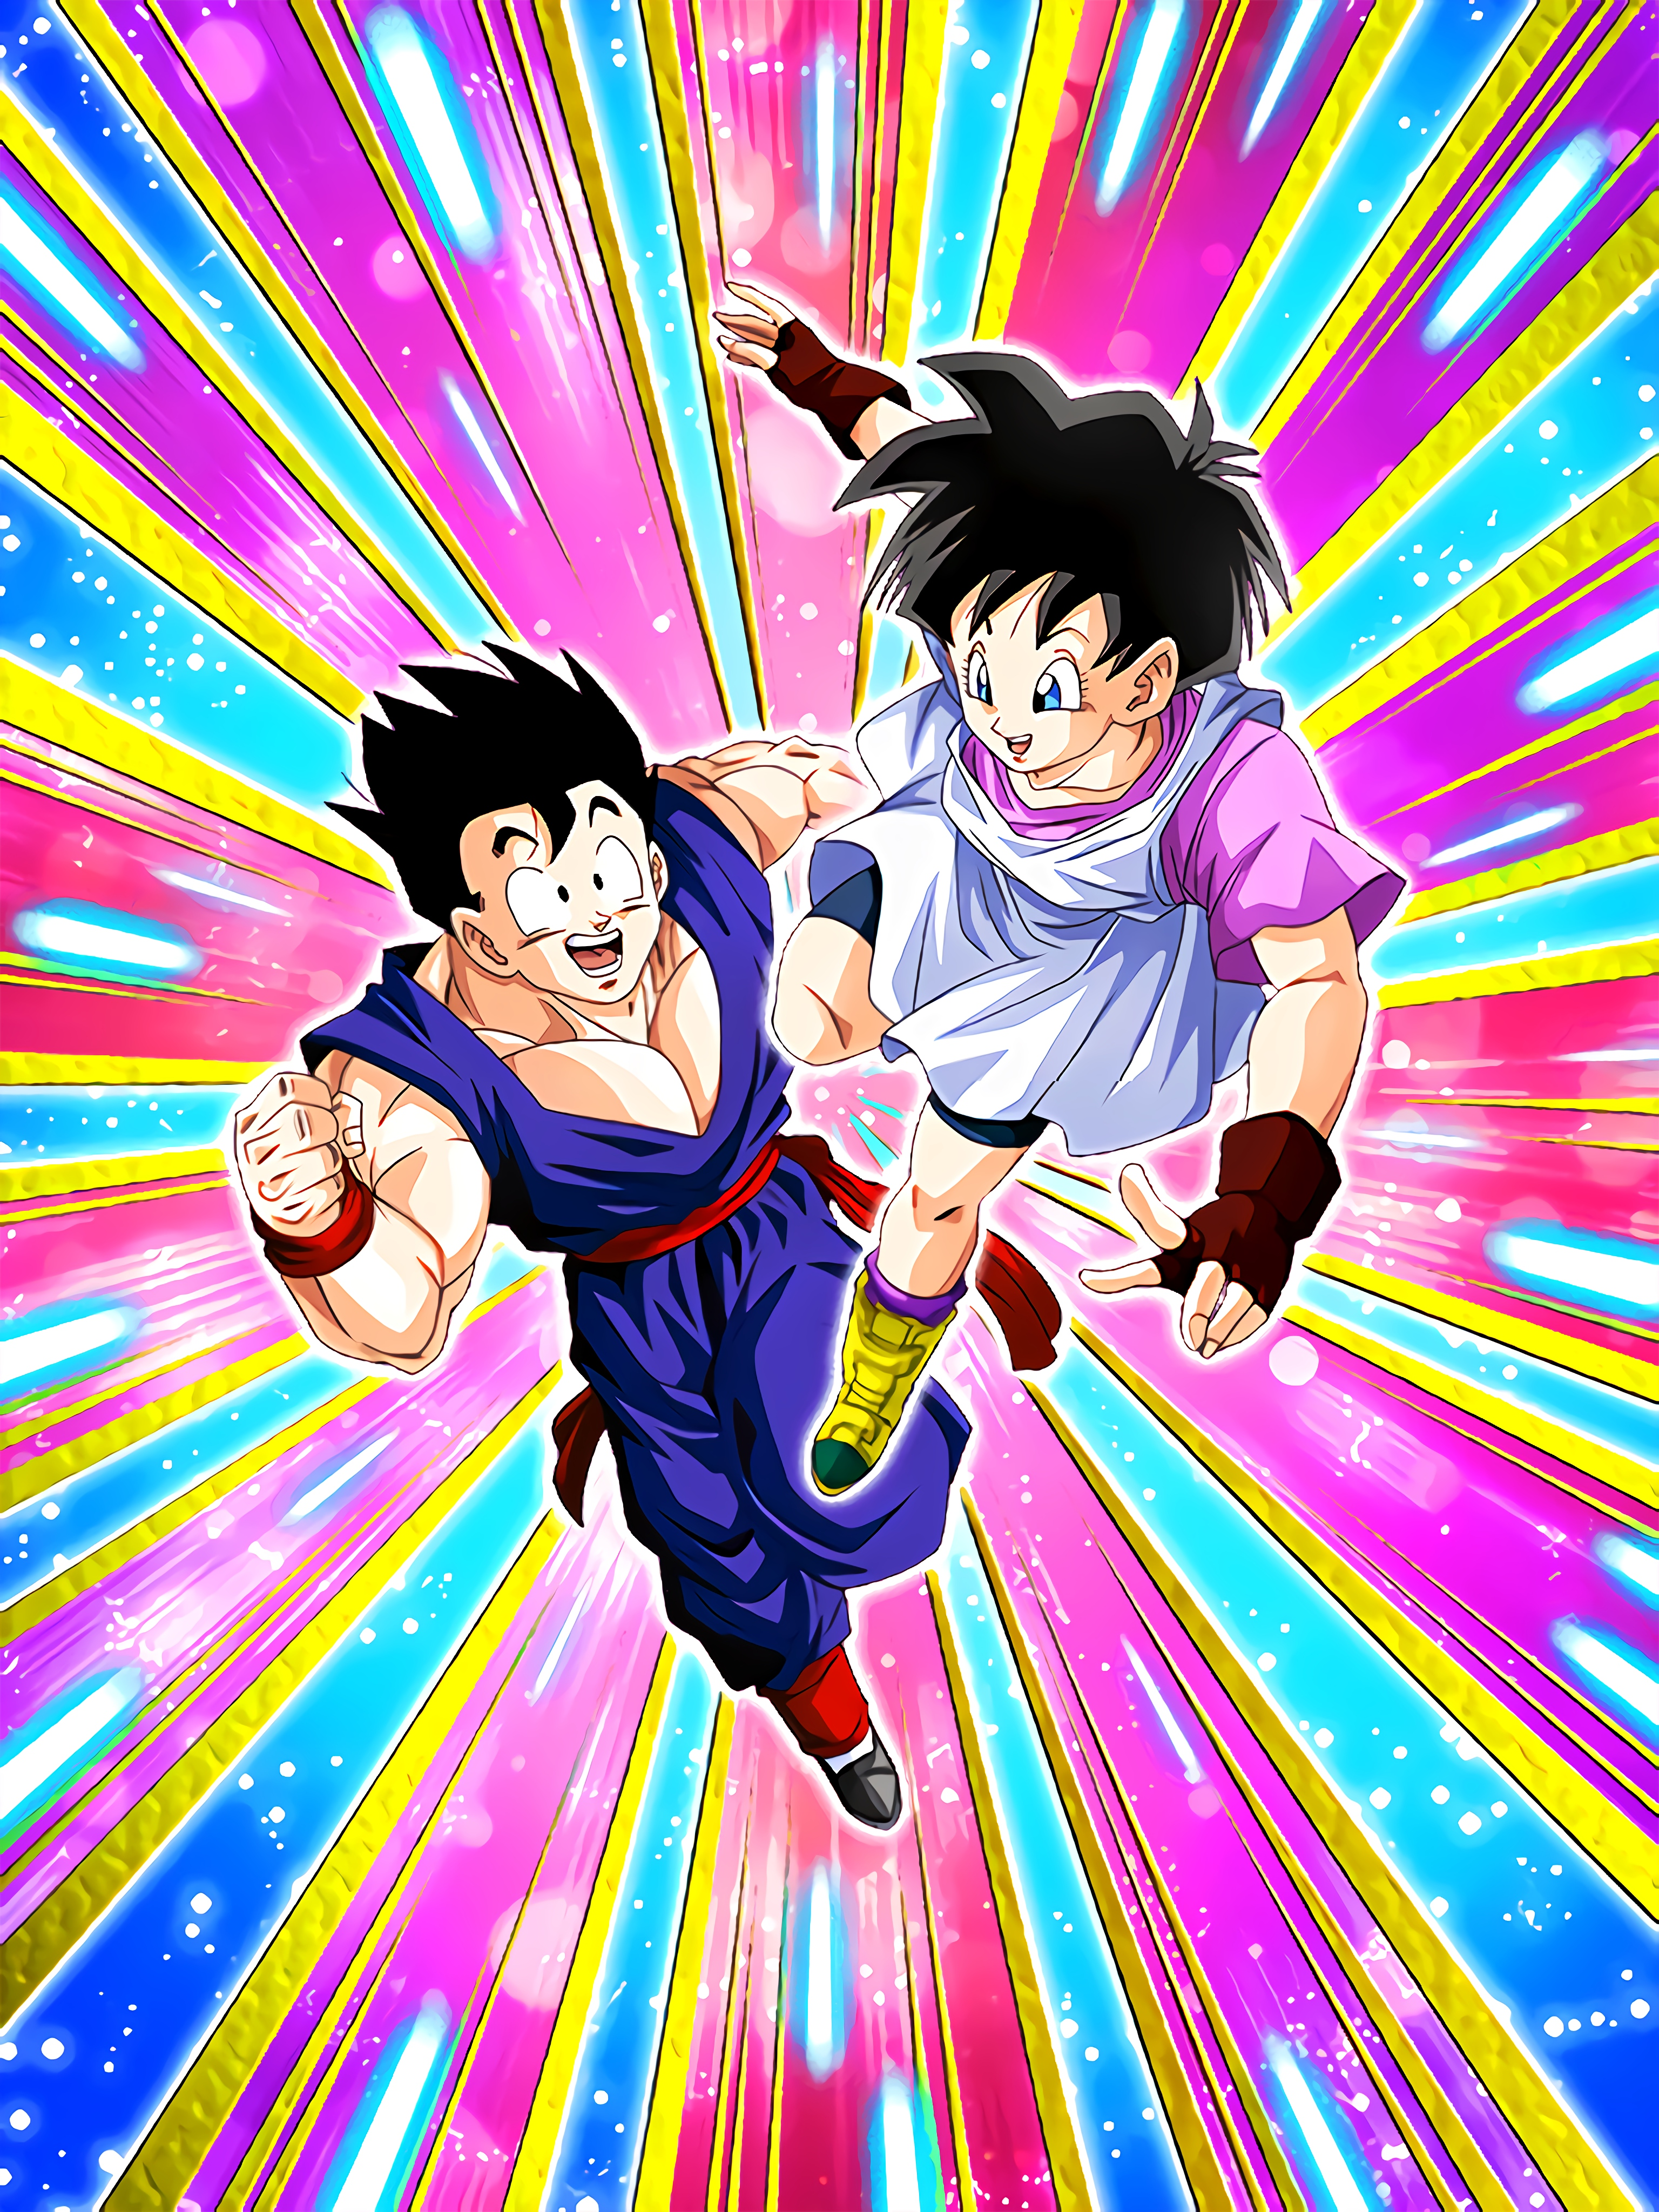 Brave Two Gohan Teen & Videl Art (Dragon Ball Z Dokkan Battle)